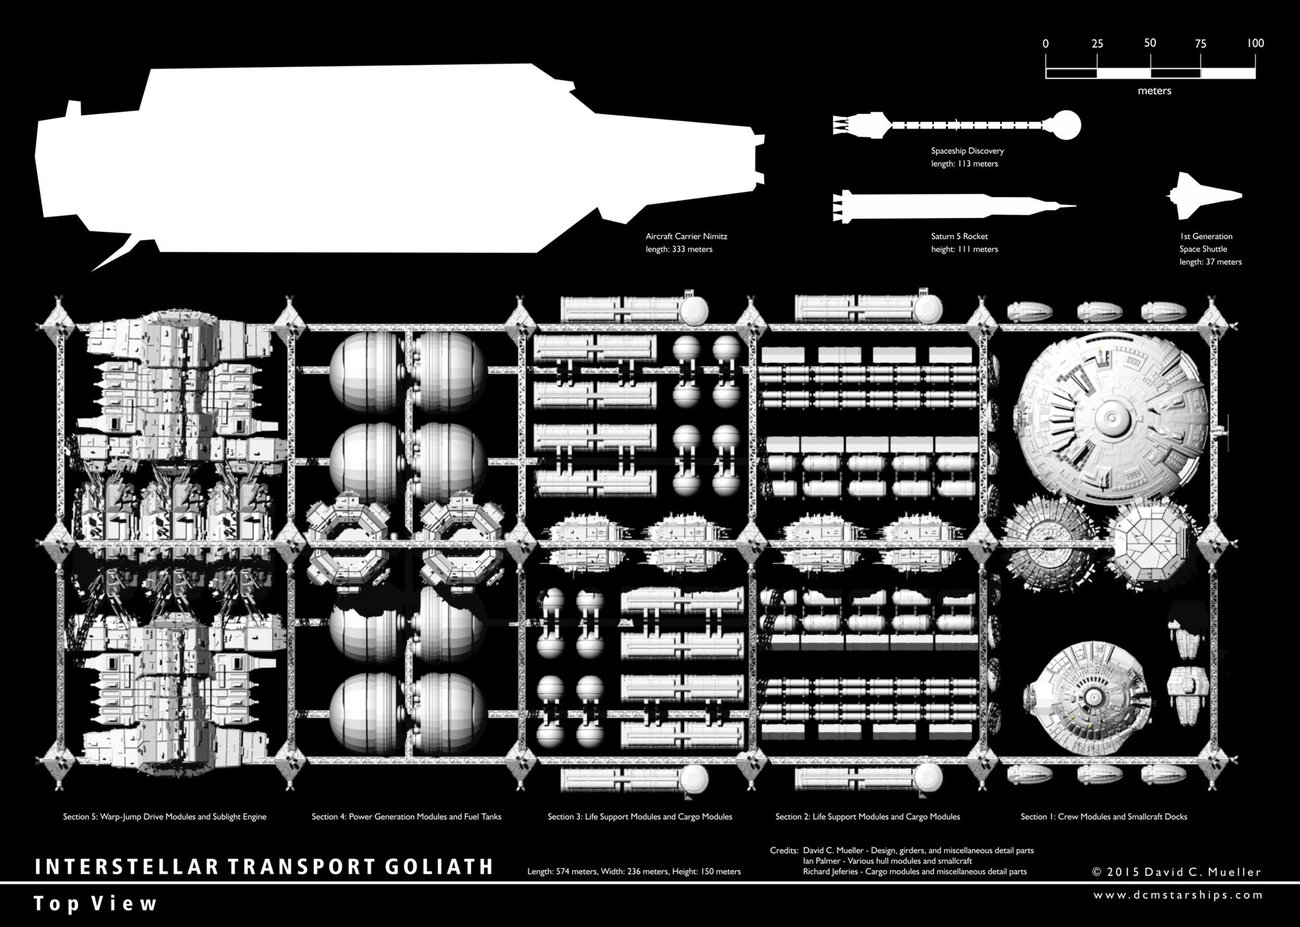 Interstellar Transport Goliath Top View